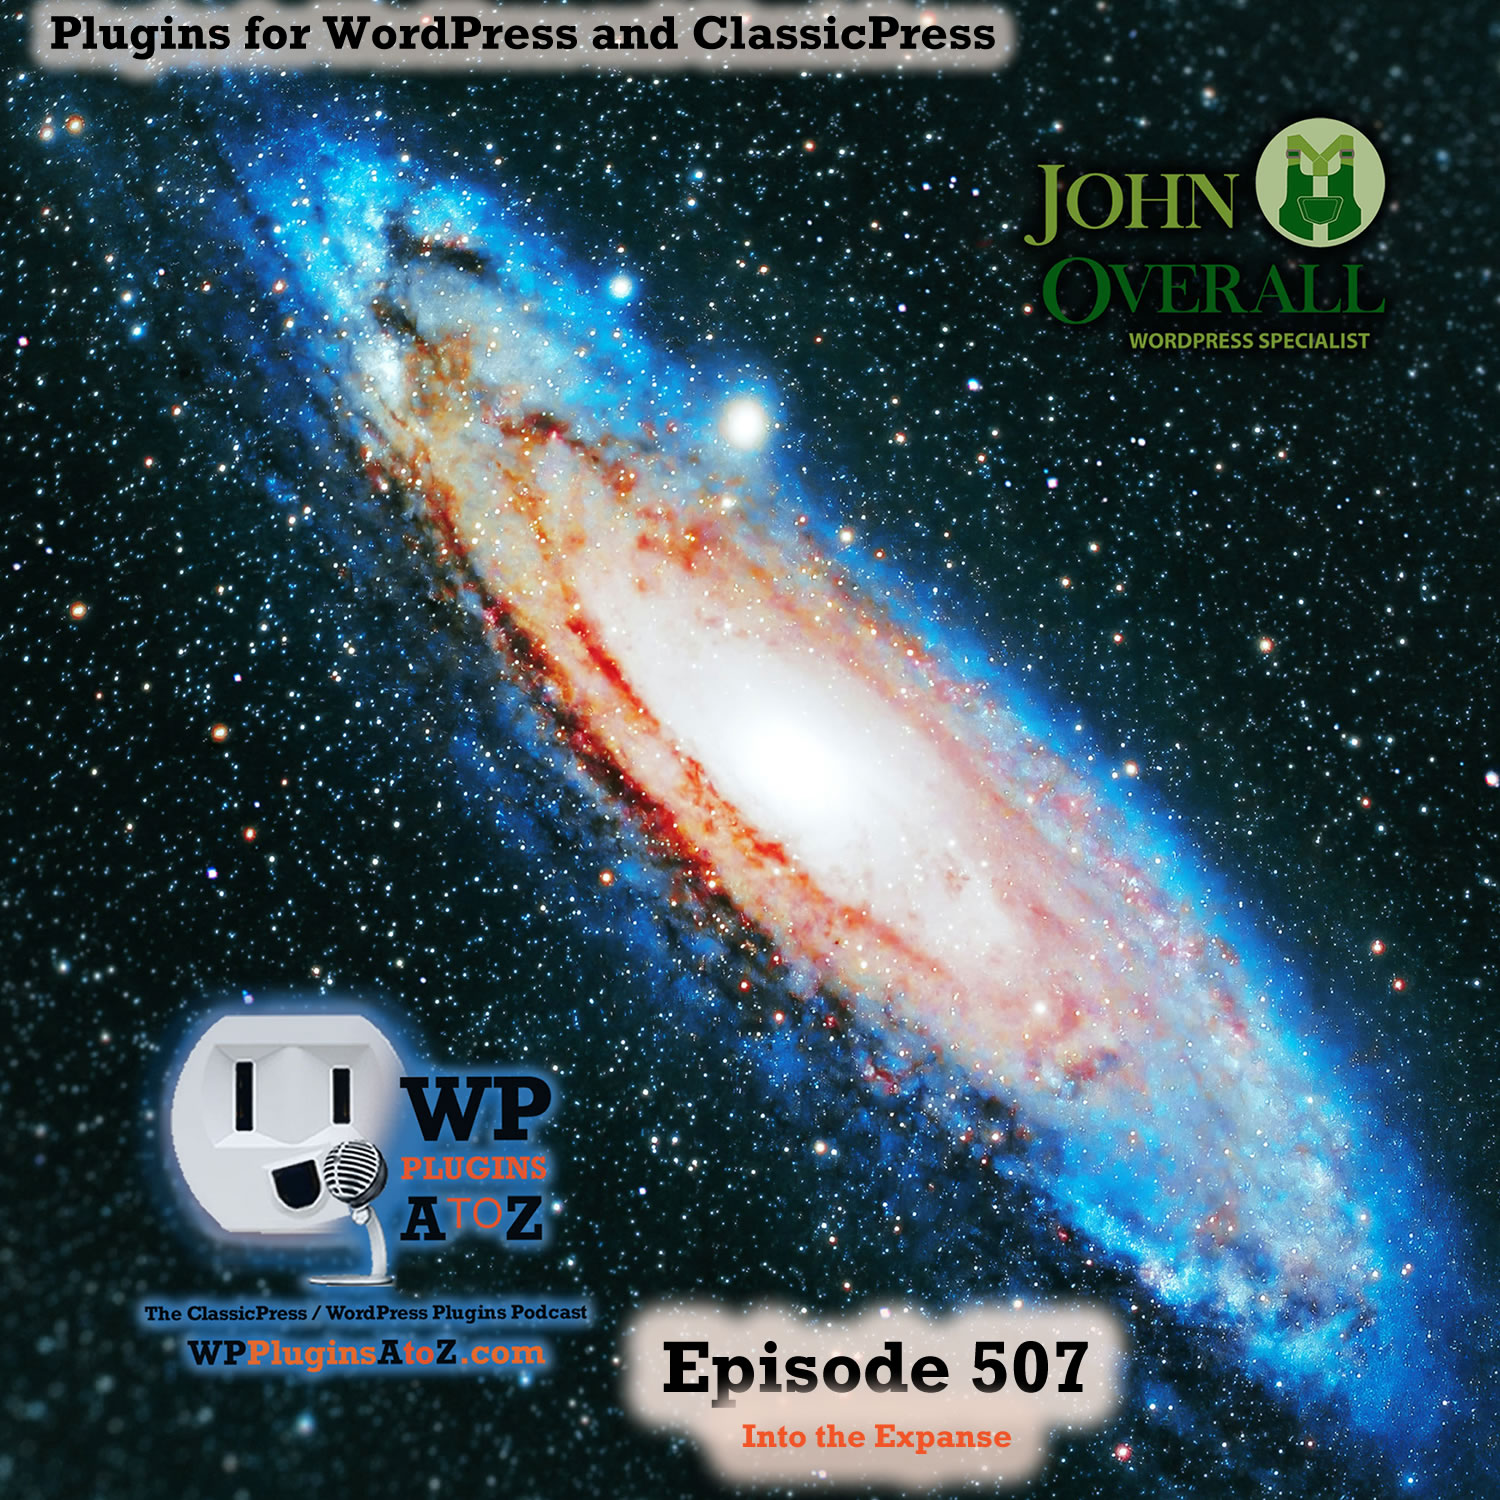 Into the Expanse It's Episode 507 - We have plugins for Stats, Links, Photos, Privacy Chat, Plugin notes...., and ClassicPress Options. It's all coming up on WordPress Plugins A-Z! Better Usage Statistics for Elementor, Internal Linking of Related Contents, Contest Gallery – Photo Contest Plugin for WordPress - contest gallery pro, Disable FLoC, Floating Chat Widget: Contact Icons, Messages, Telegram, Email, SMS, Call Button – Chaty, Plugin Notes Label and ClassicPress options on Episode 507